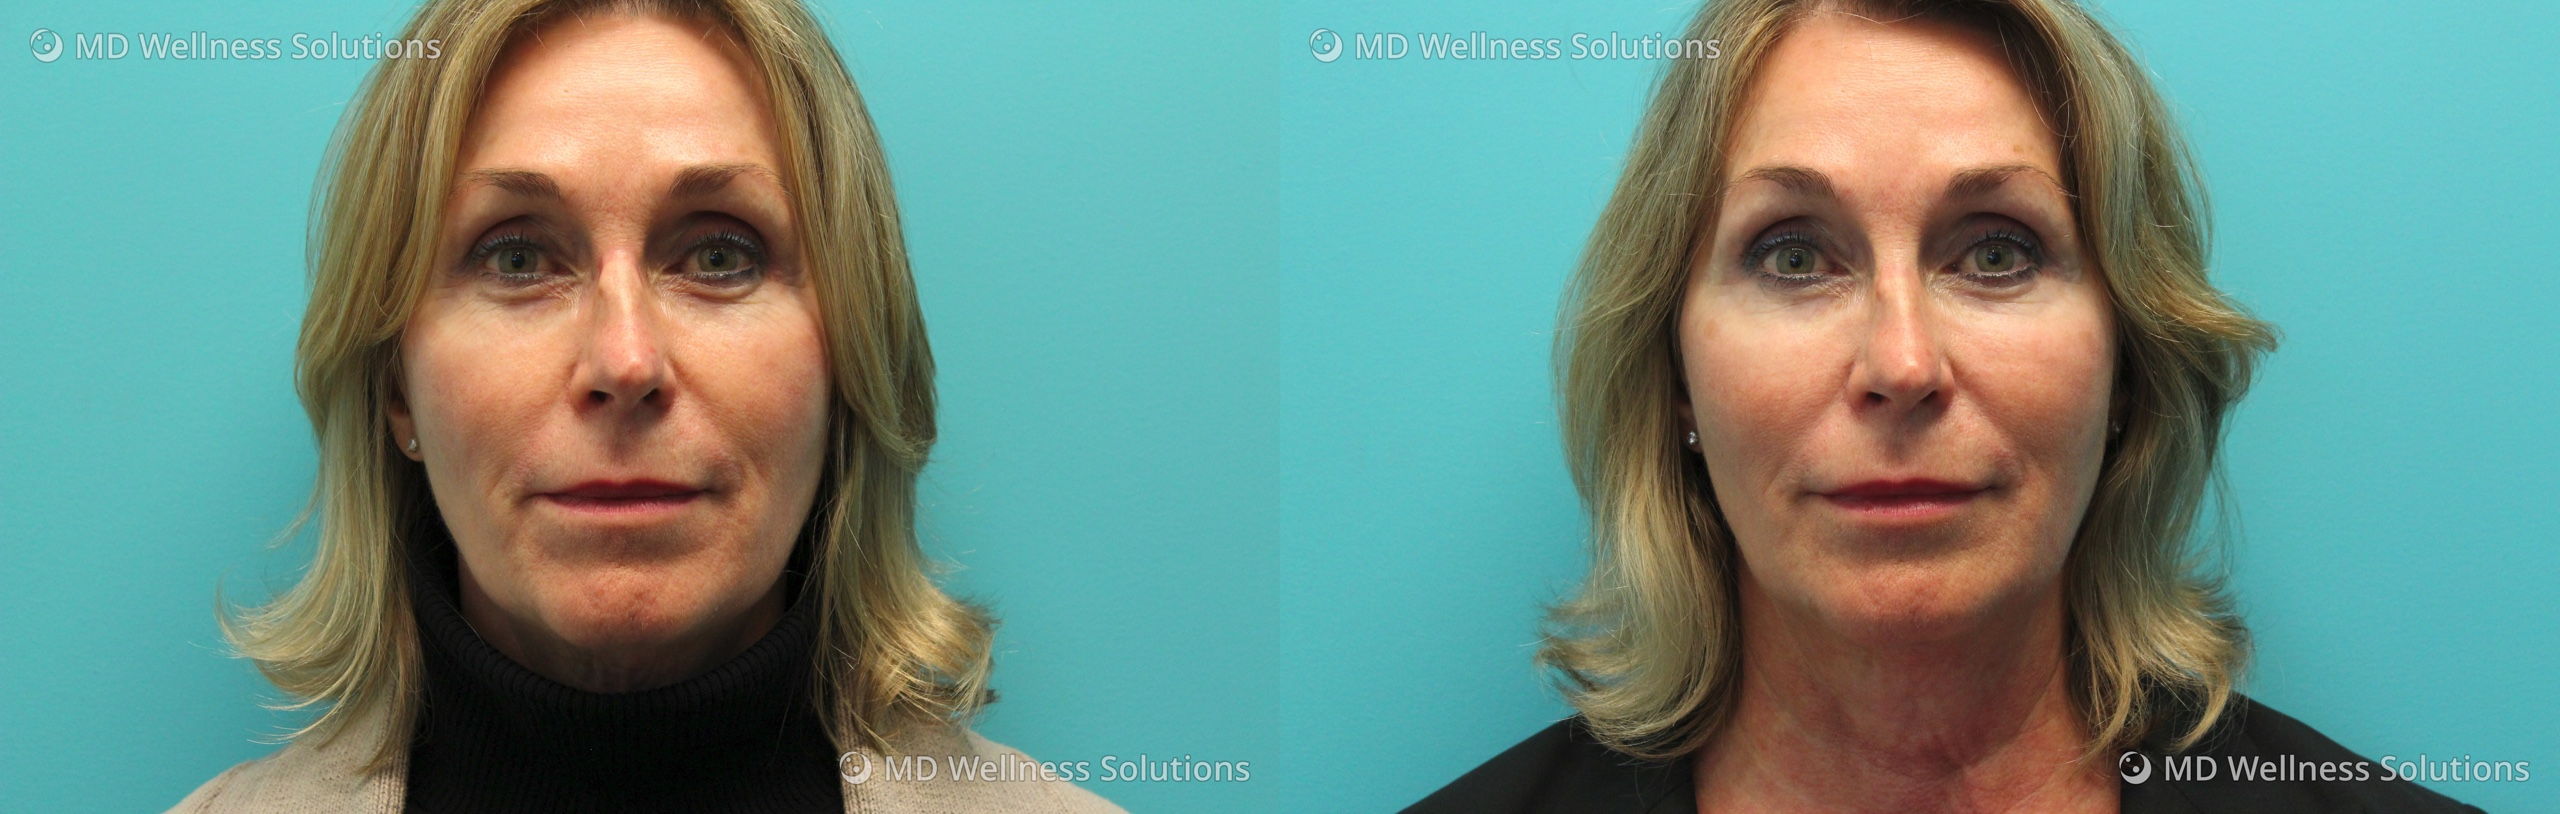 65-74 year old woman before and after dermal filler treatment